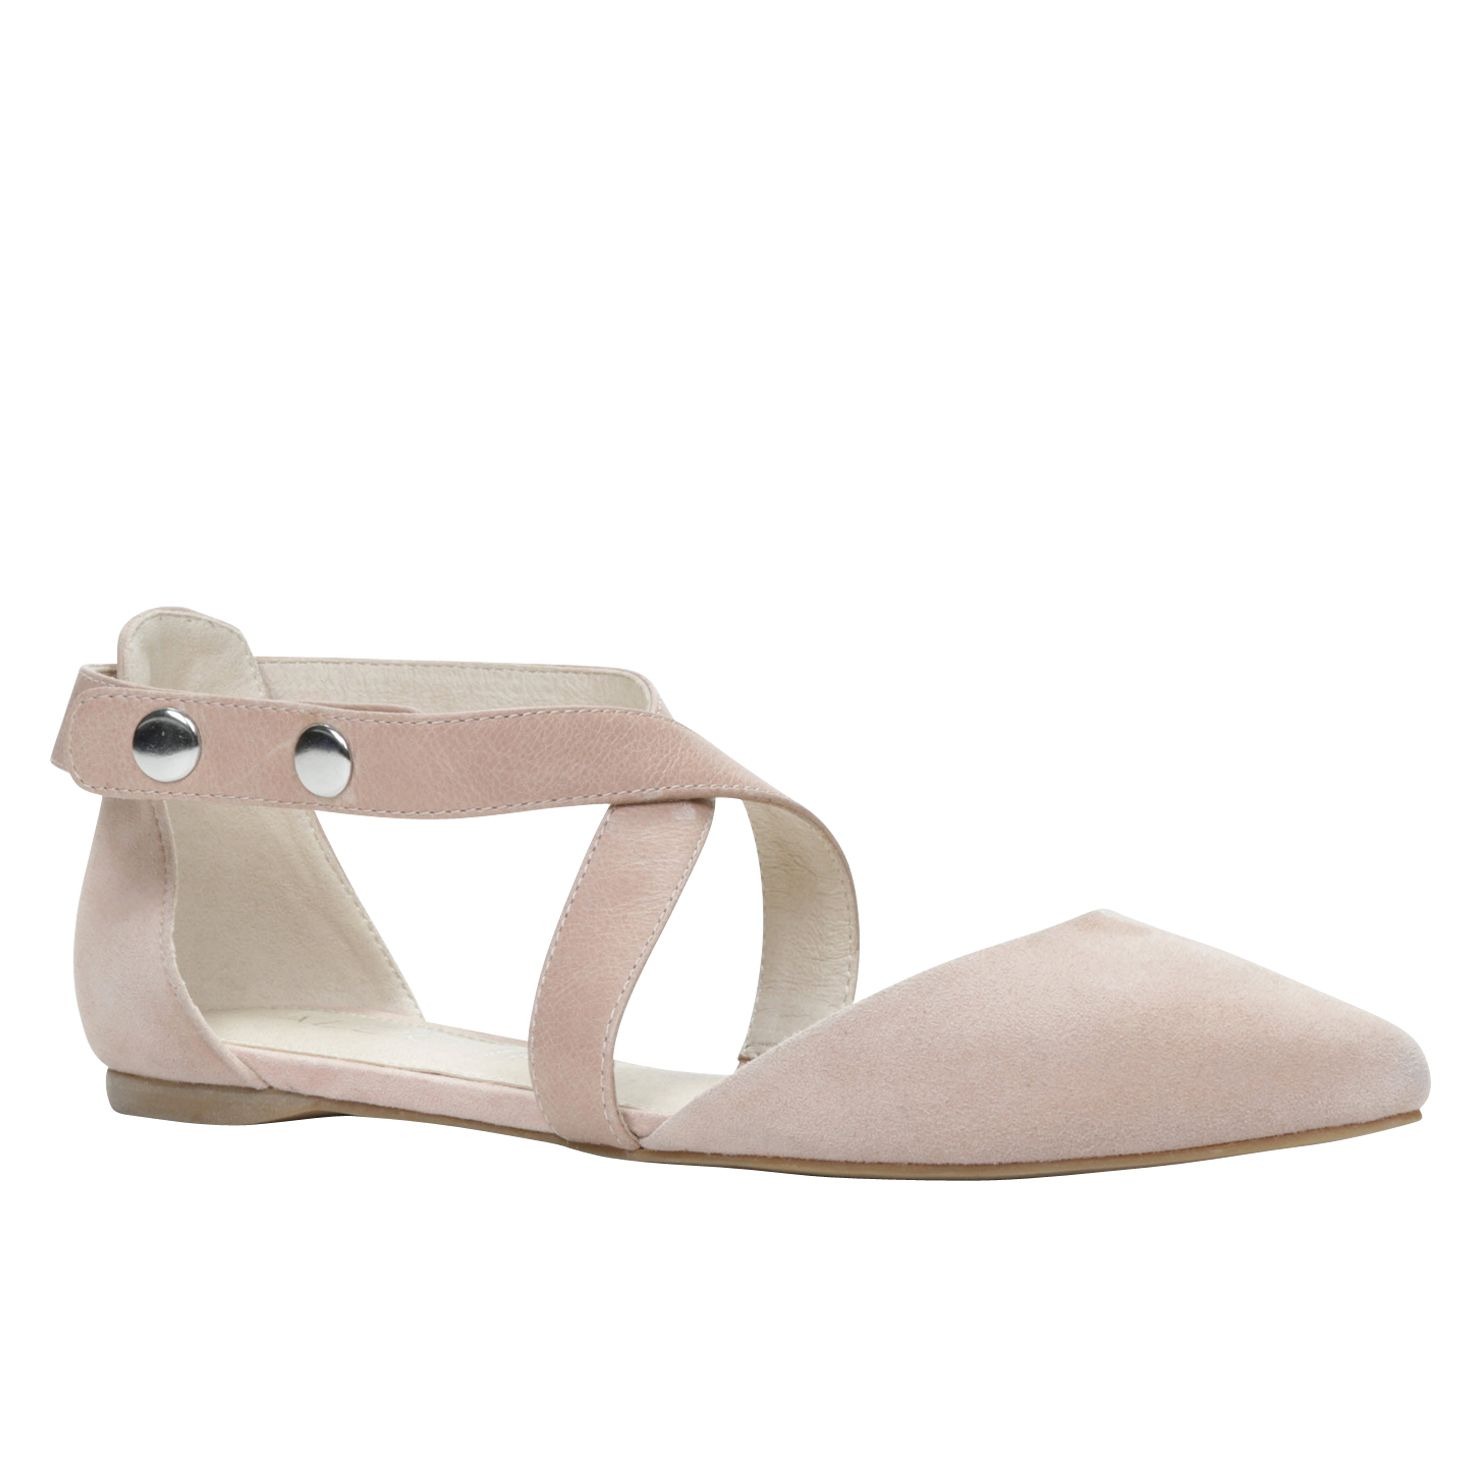 Direven ballerina pump shoes